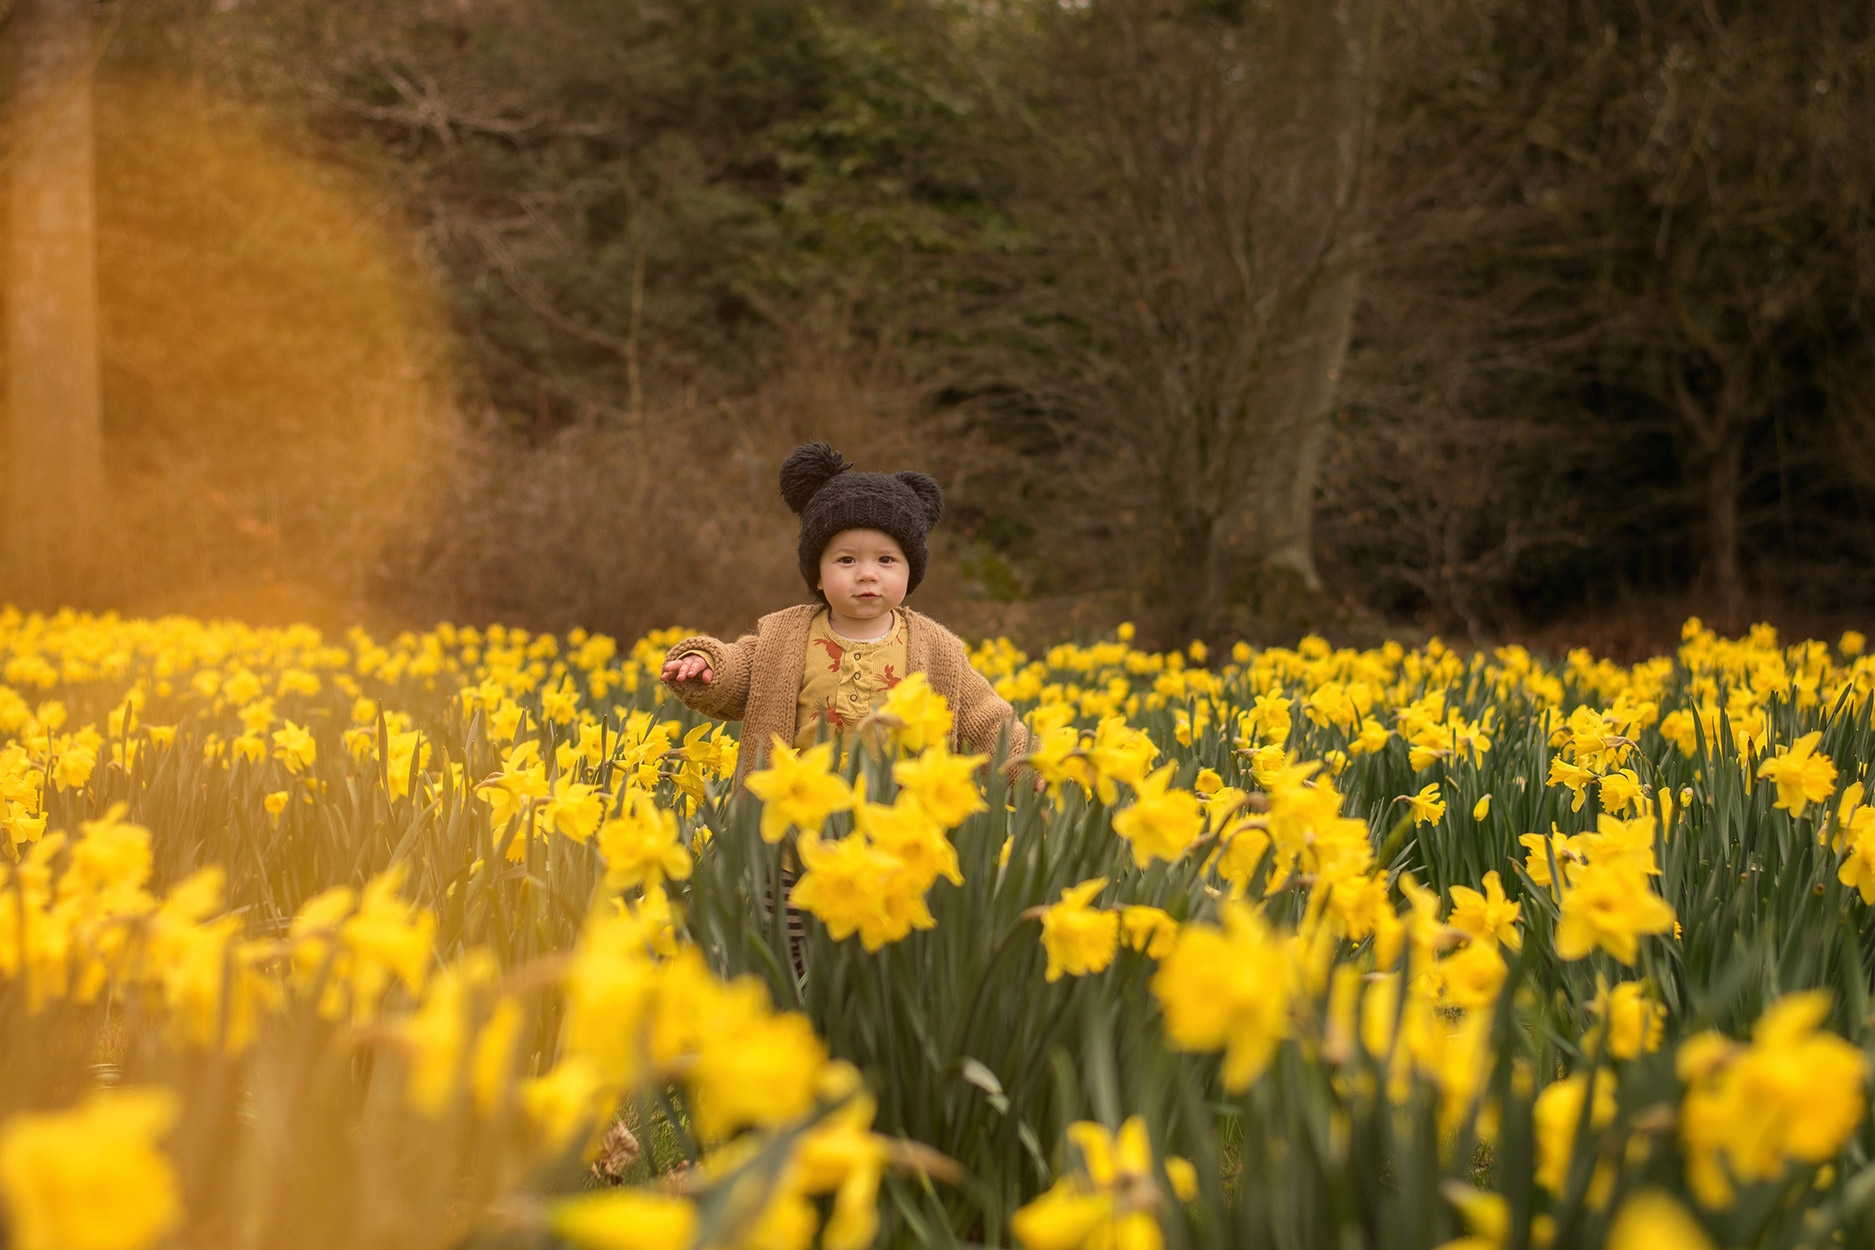 Family of four with two young boys amongst the daffodils at Blenheim Palace and Gardens for the Easter weekend